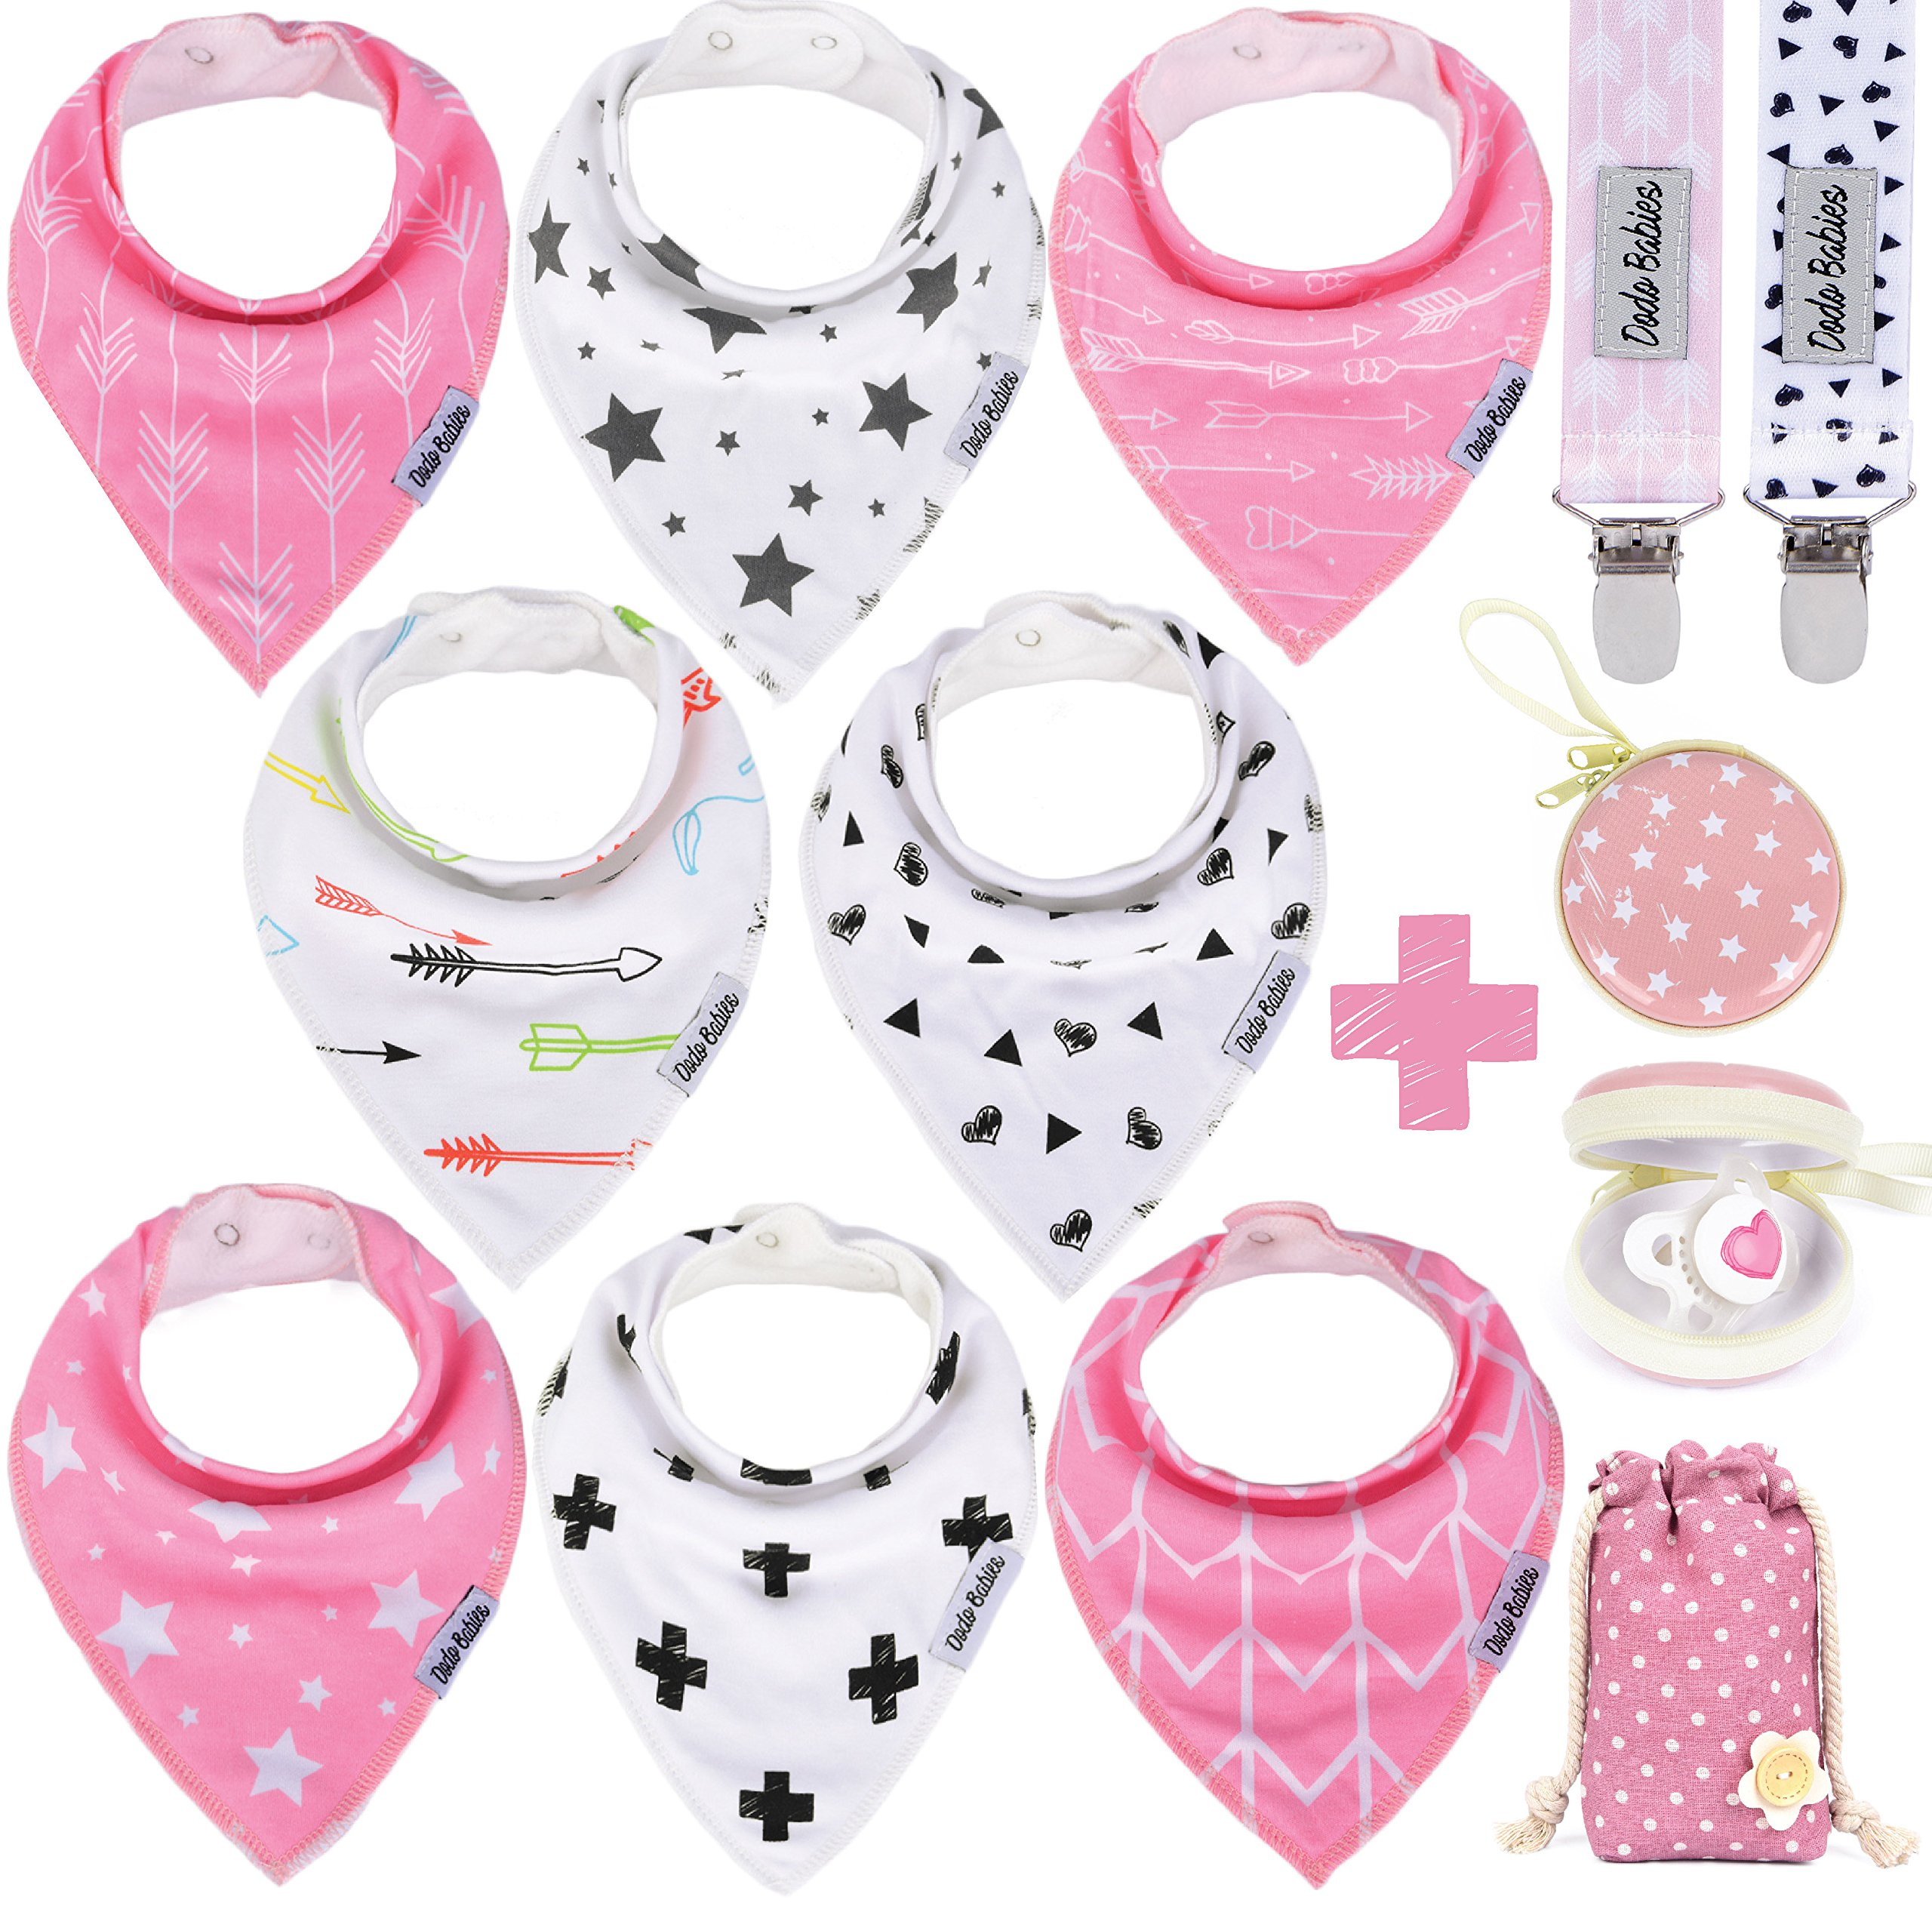 BabyBandana DroolBibs by Dodo Babies + 2 Pacifier Clips + Pacifier Case In a Gift Bag, Pack of 8 Premium Quality For Girls , Excellent Baby Shower / Registry Gift by Dodo Babies